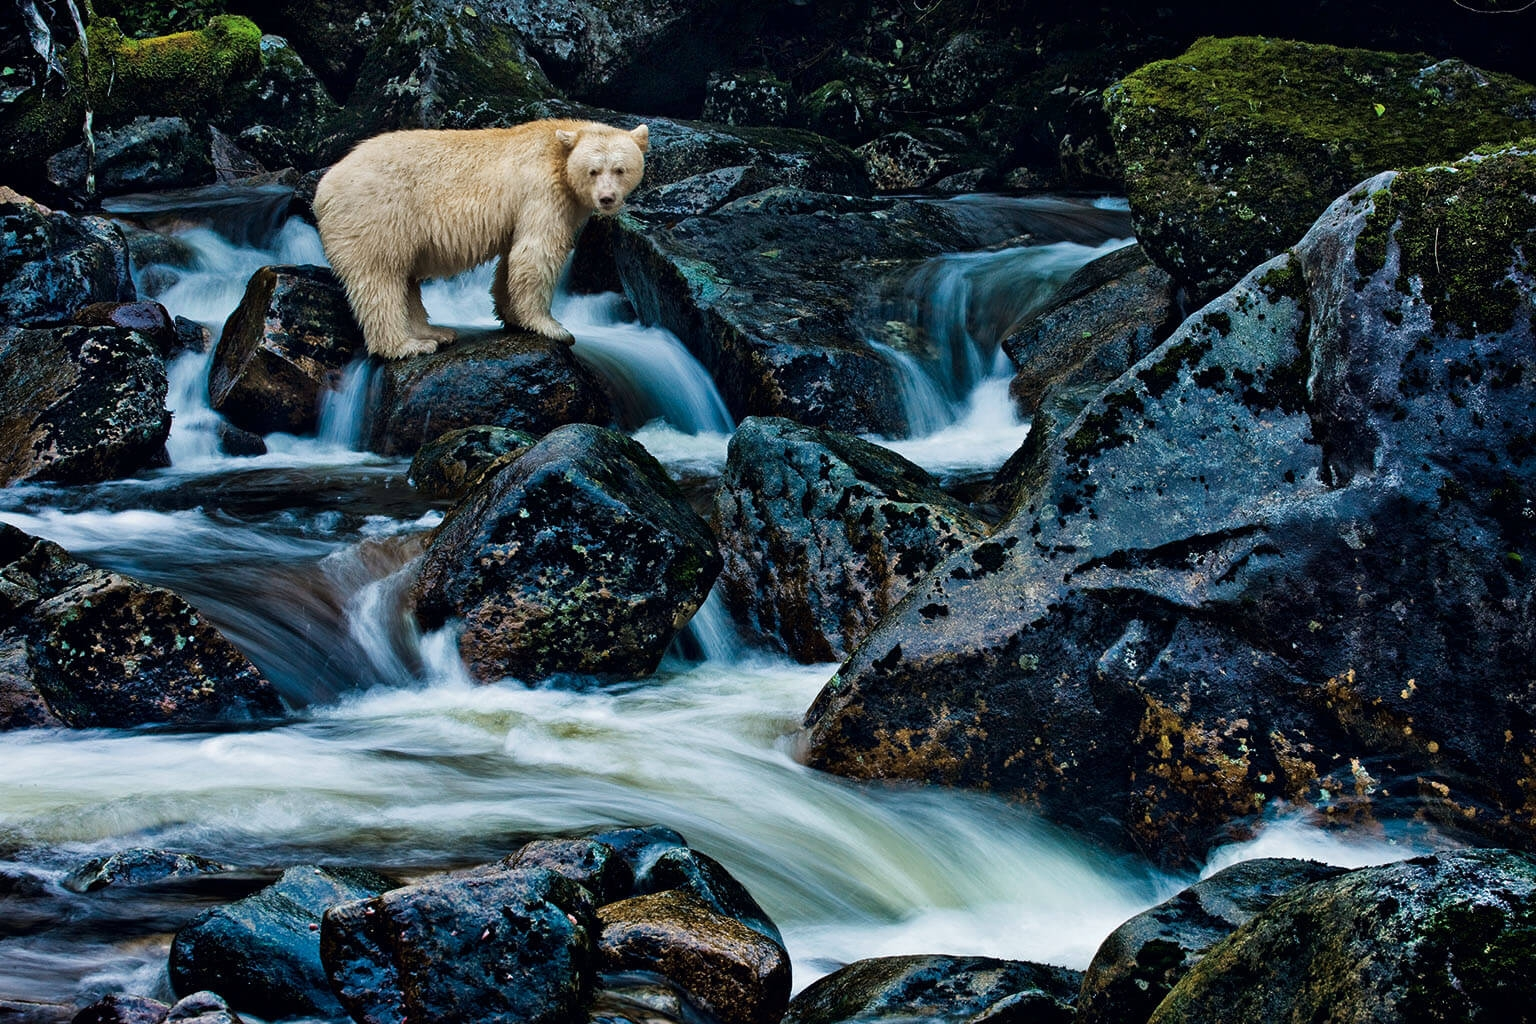 PHOTO: PAUL NICKLEN, NATIONAL GEOGRAPHIC CREATIVE